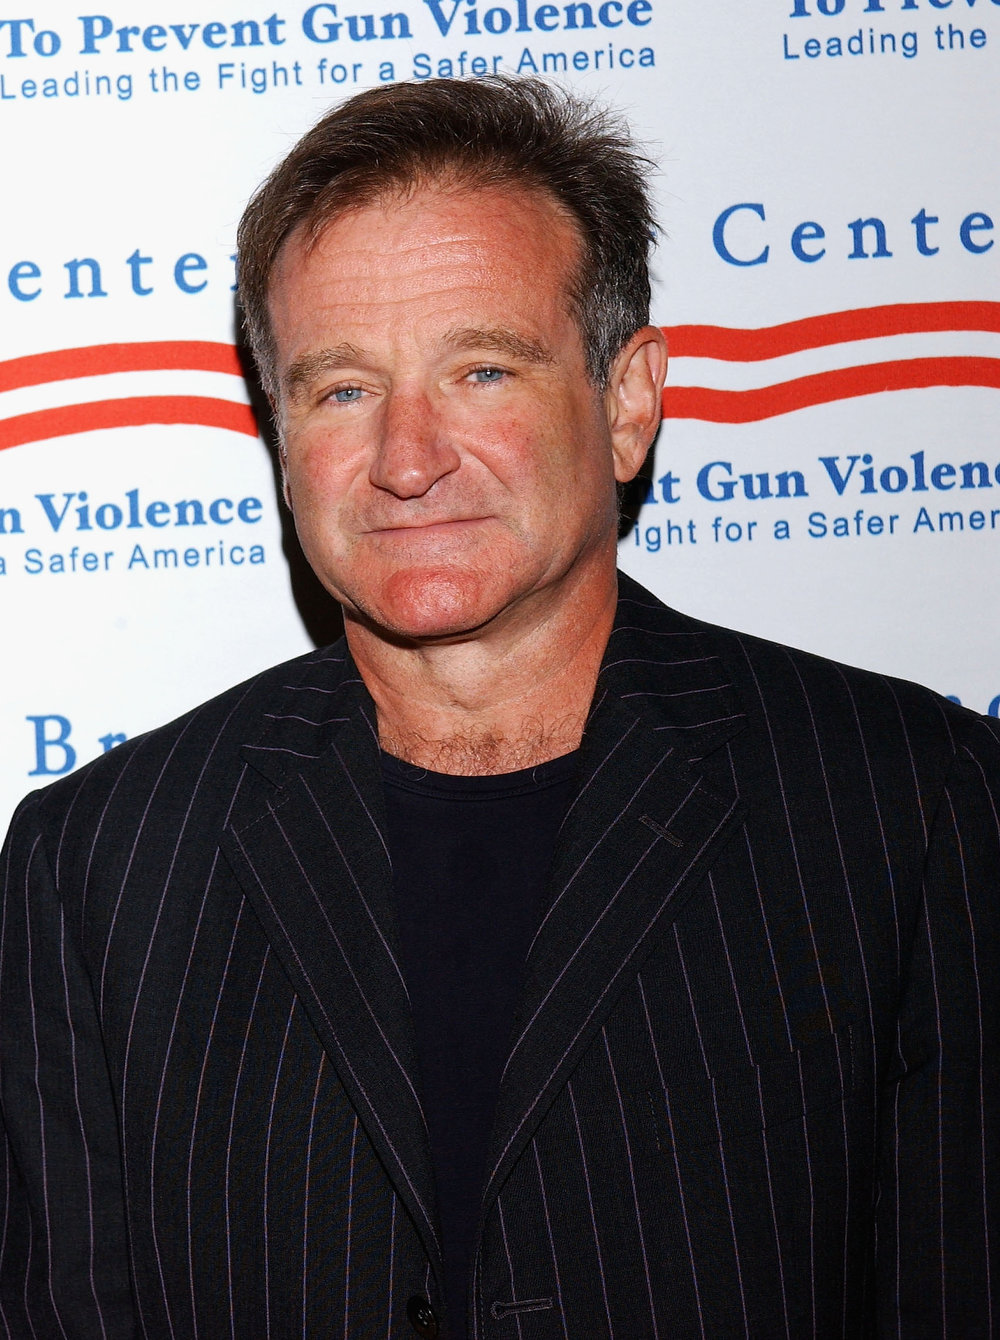 . Actor Robin Williams attends the Brady Center to Prevent Violence Benefit at the Beverly Hilton Hotel on October 7, 2004 in Beverly Hills, California.  (Photo by Stephen Shugerman/Getty Images)